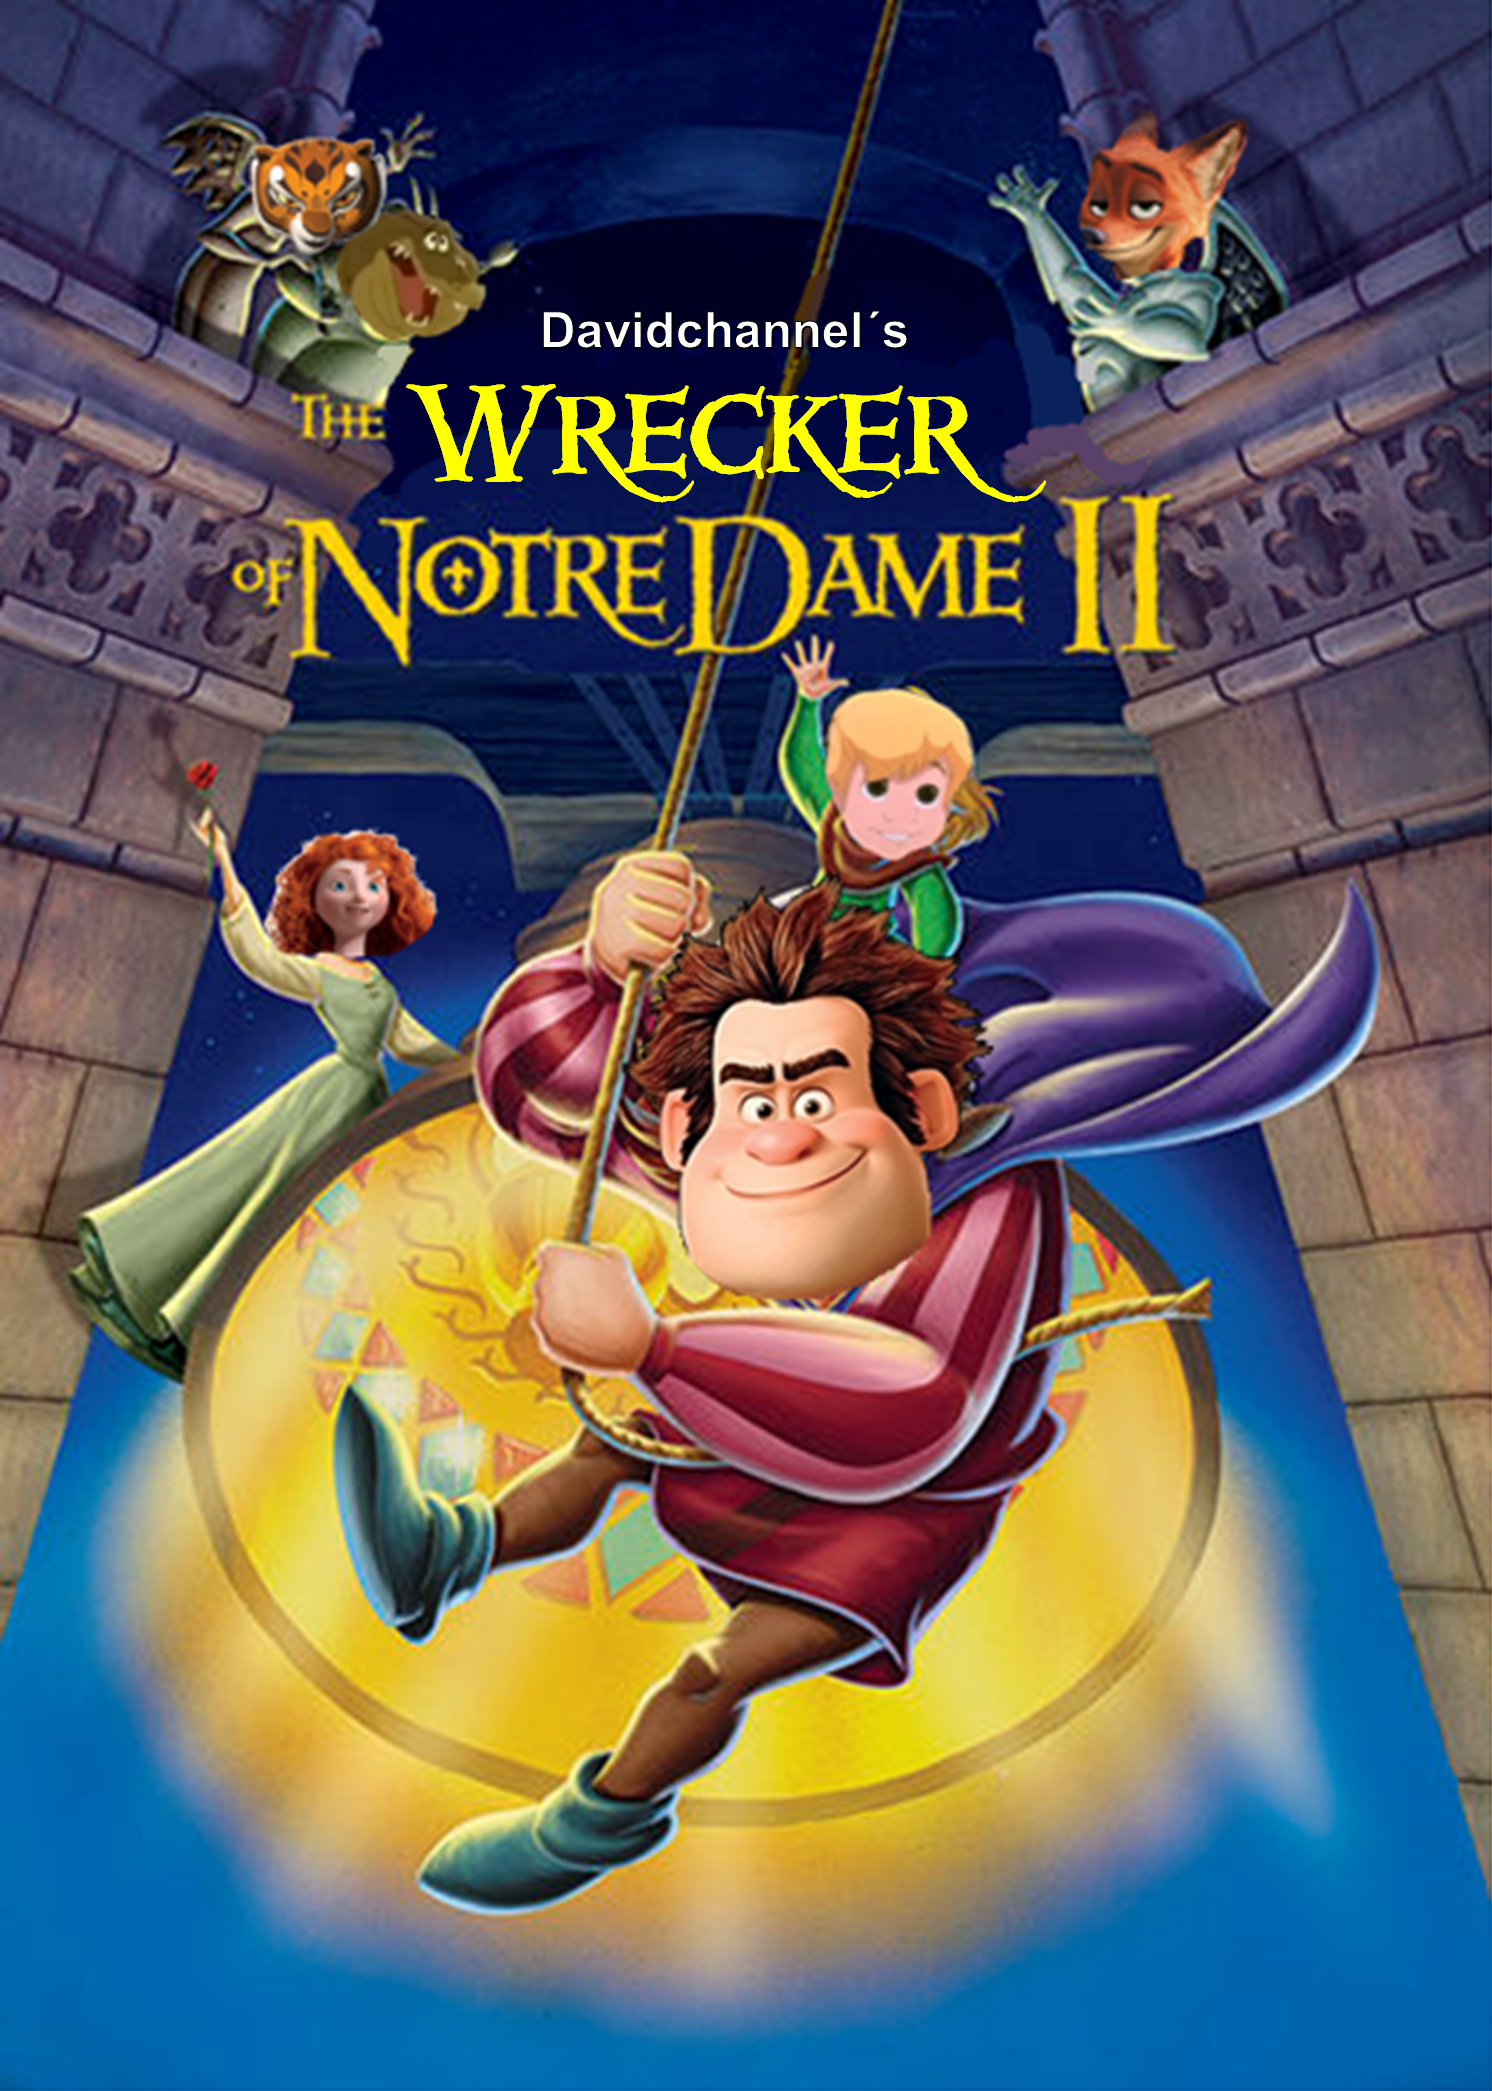 The Wrecker of Notre Dame II